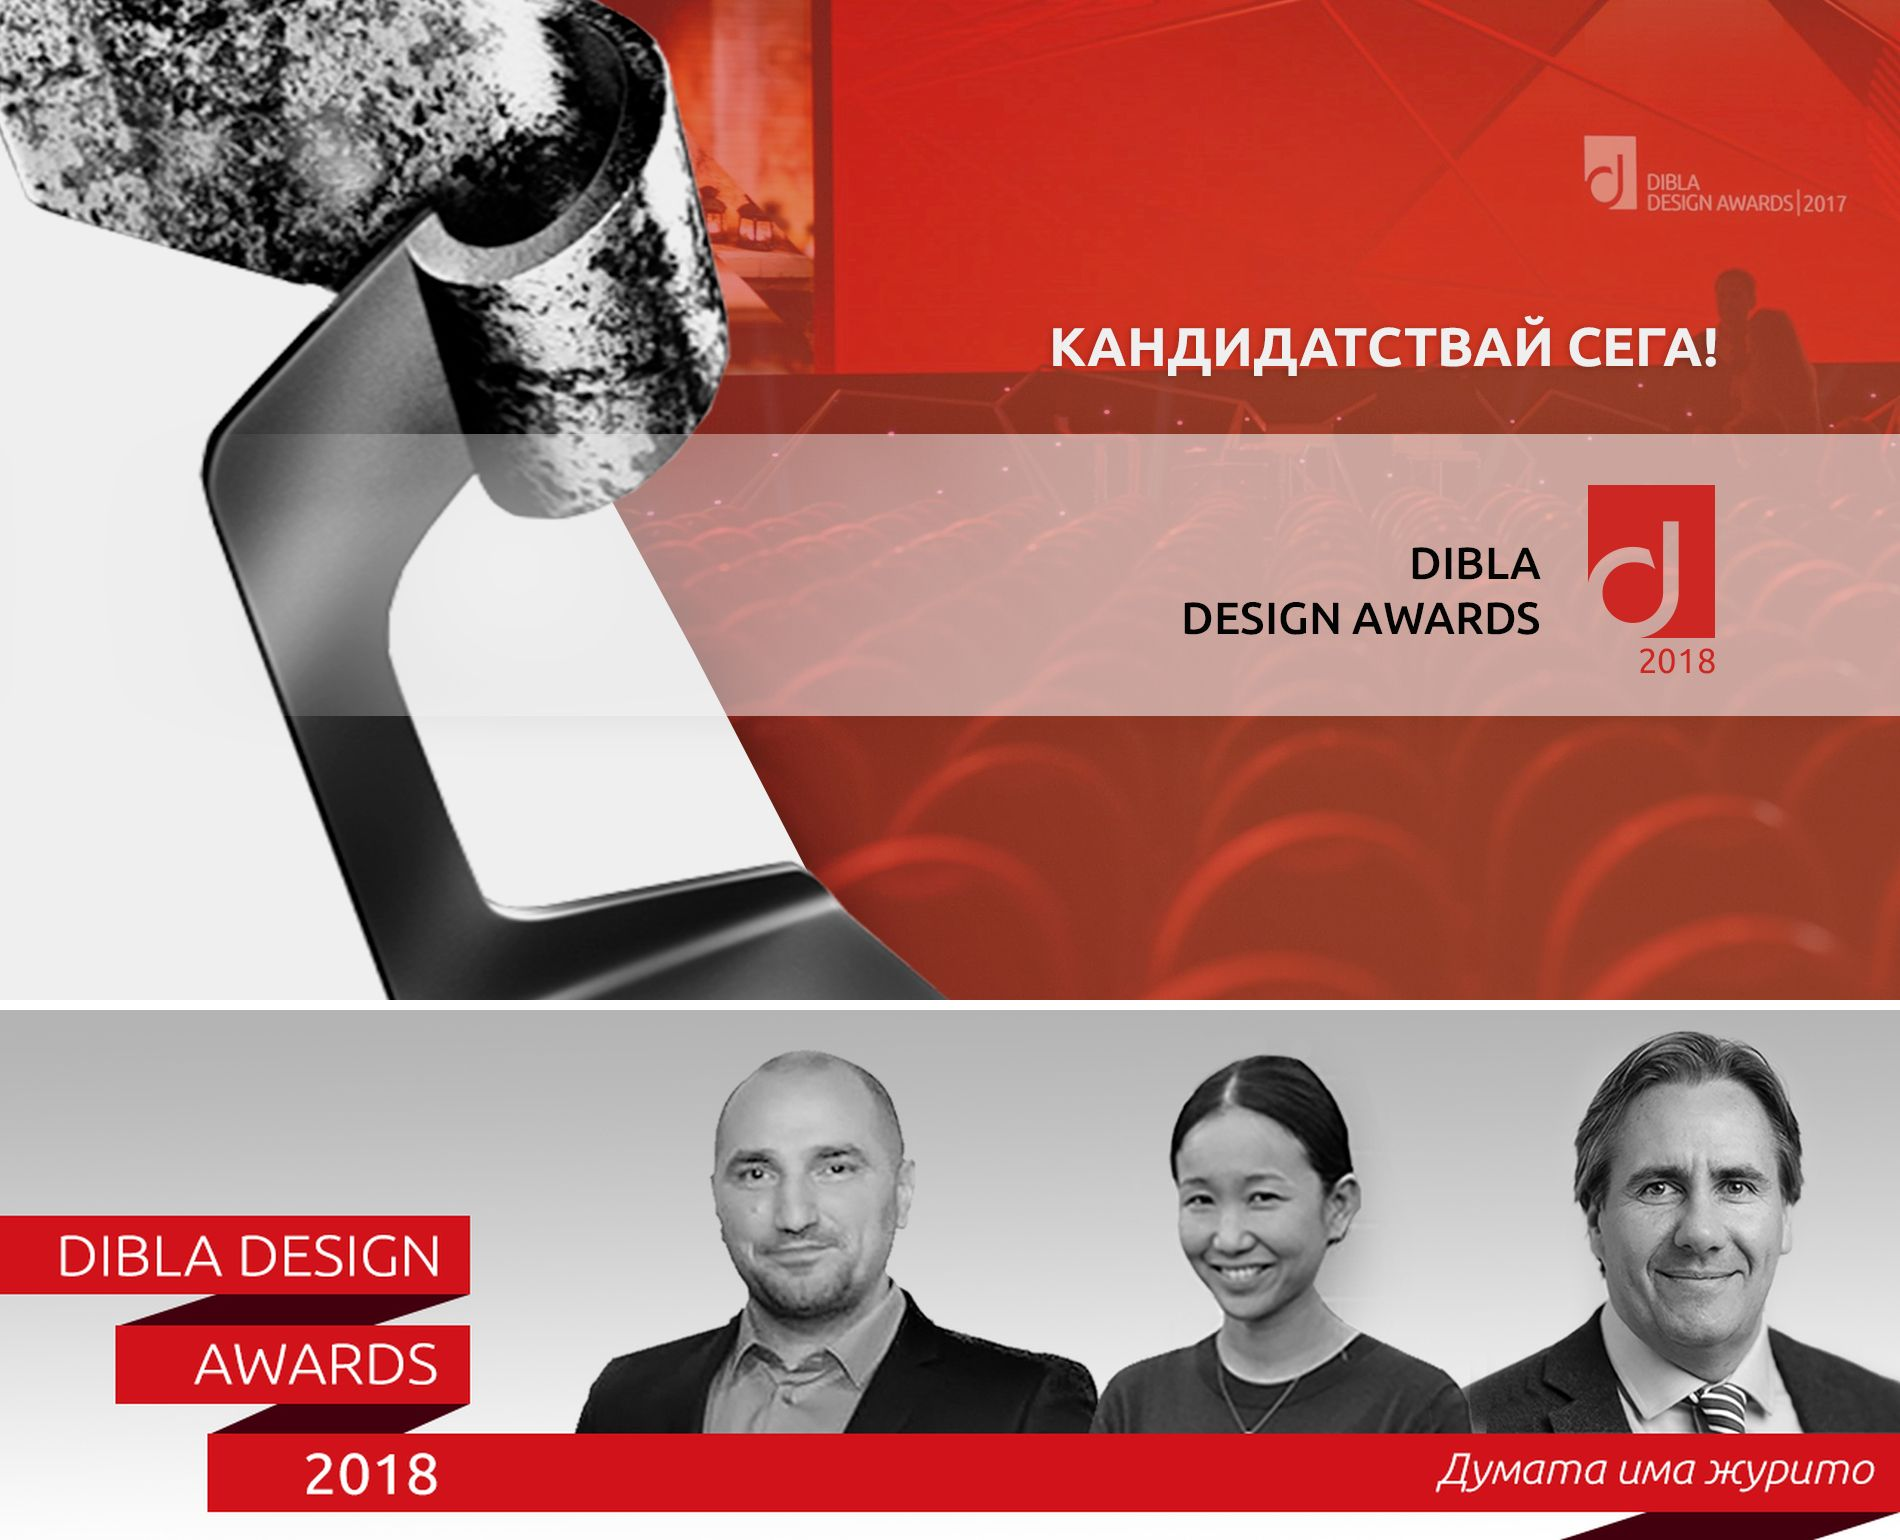 DIBLA DESIGN AWARDS – думата има журито